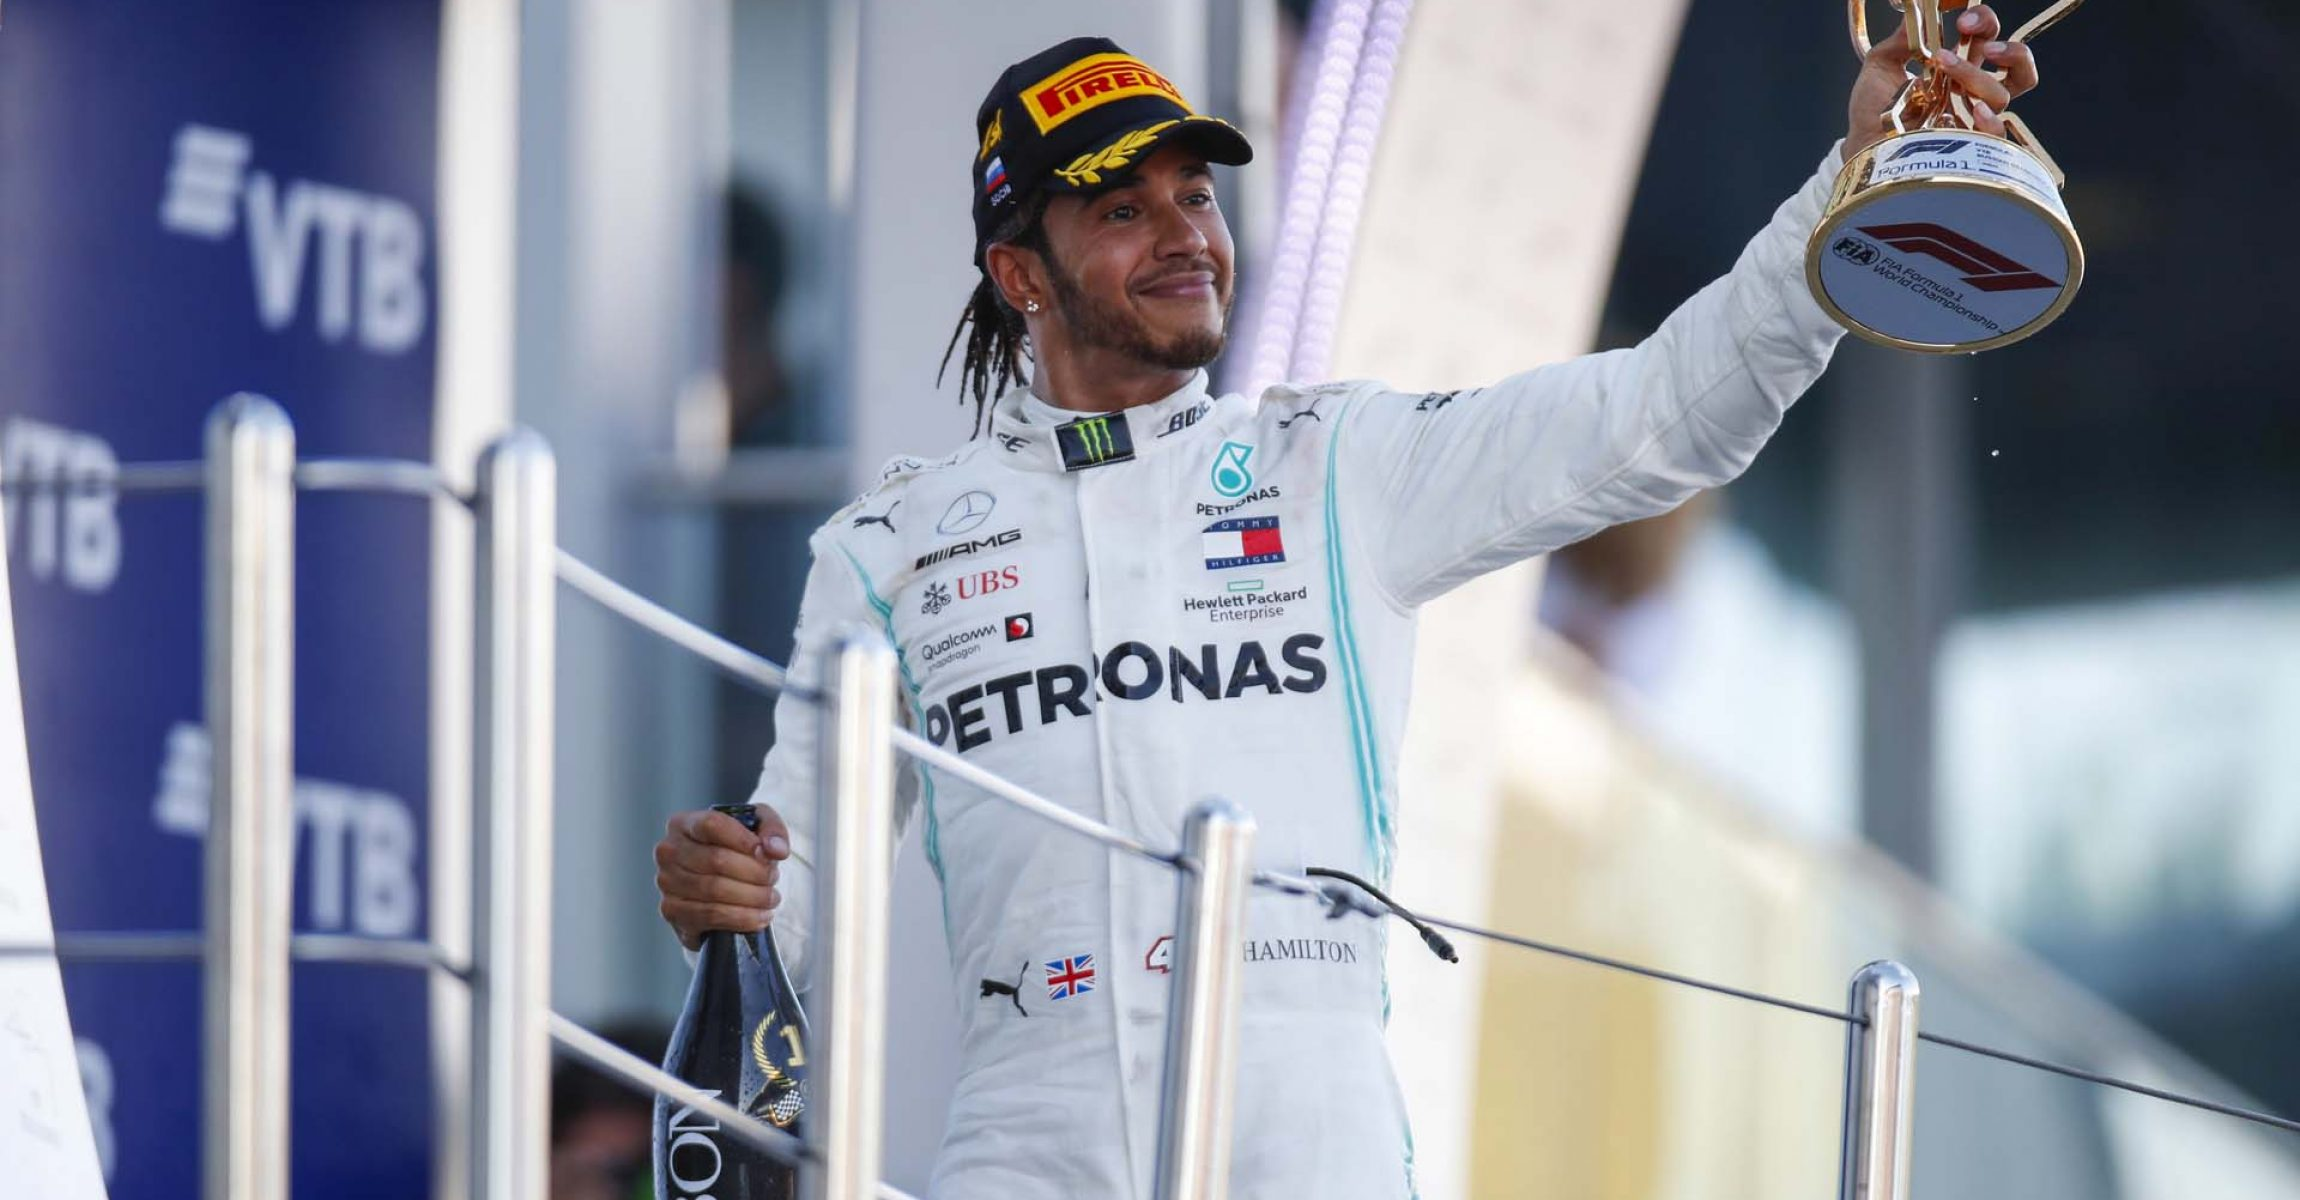 SOCHI AUTODROM, RUSSIAN FEDERATION - SEPTEMBER 29: Lewis Hamilton, Mercedes AMG F1, celebrates on the podium during the Russian GP at Sochi Autodrom on September 29, 2019 in Sochi Autodrom, Russian Federation. (Photo by Joe Portlock / LAT Images)